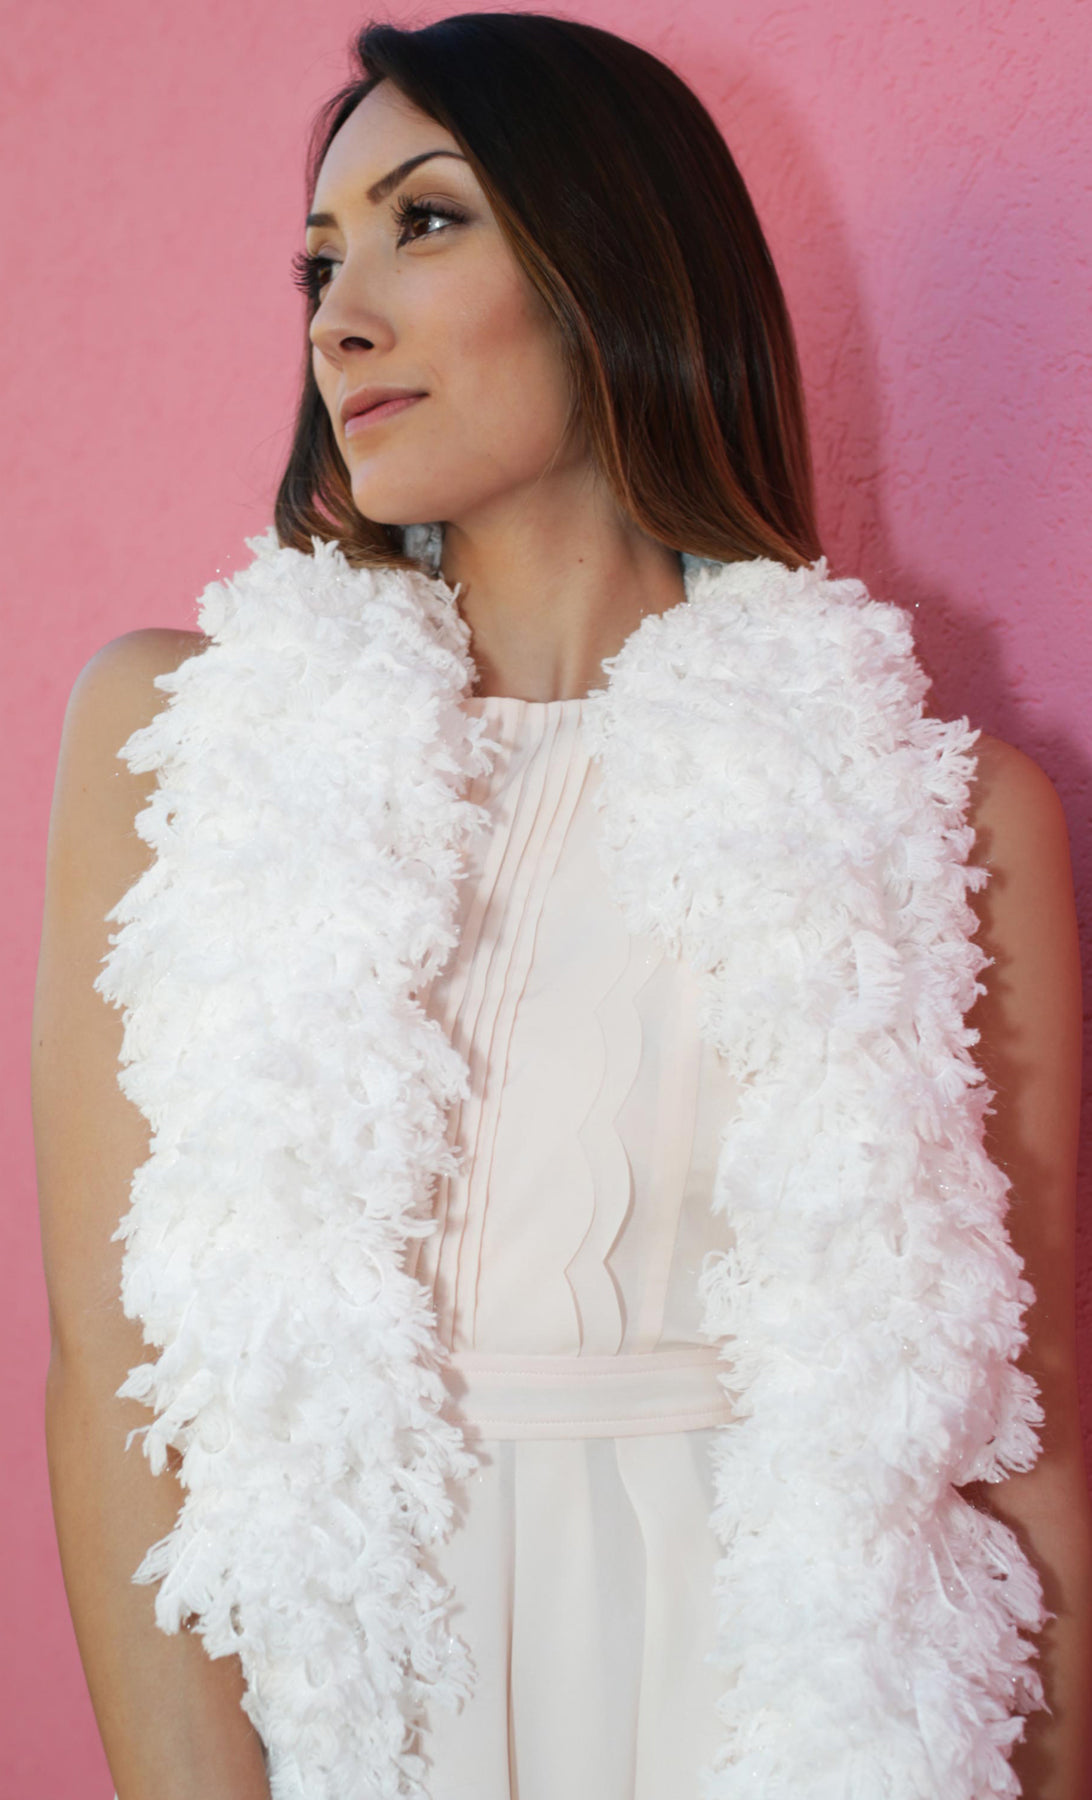 SUPER Sized Featherless Boa - Snow White - Happy Boa: Faux Feather Boa